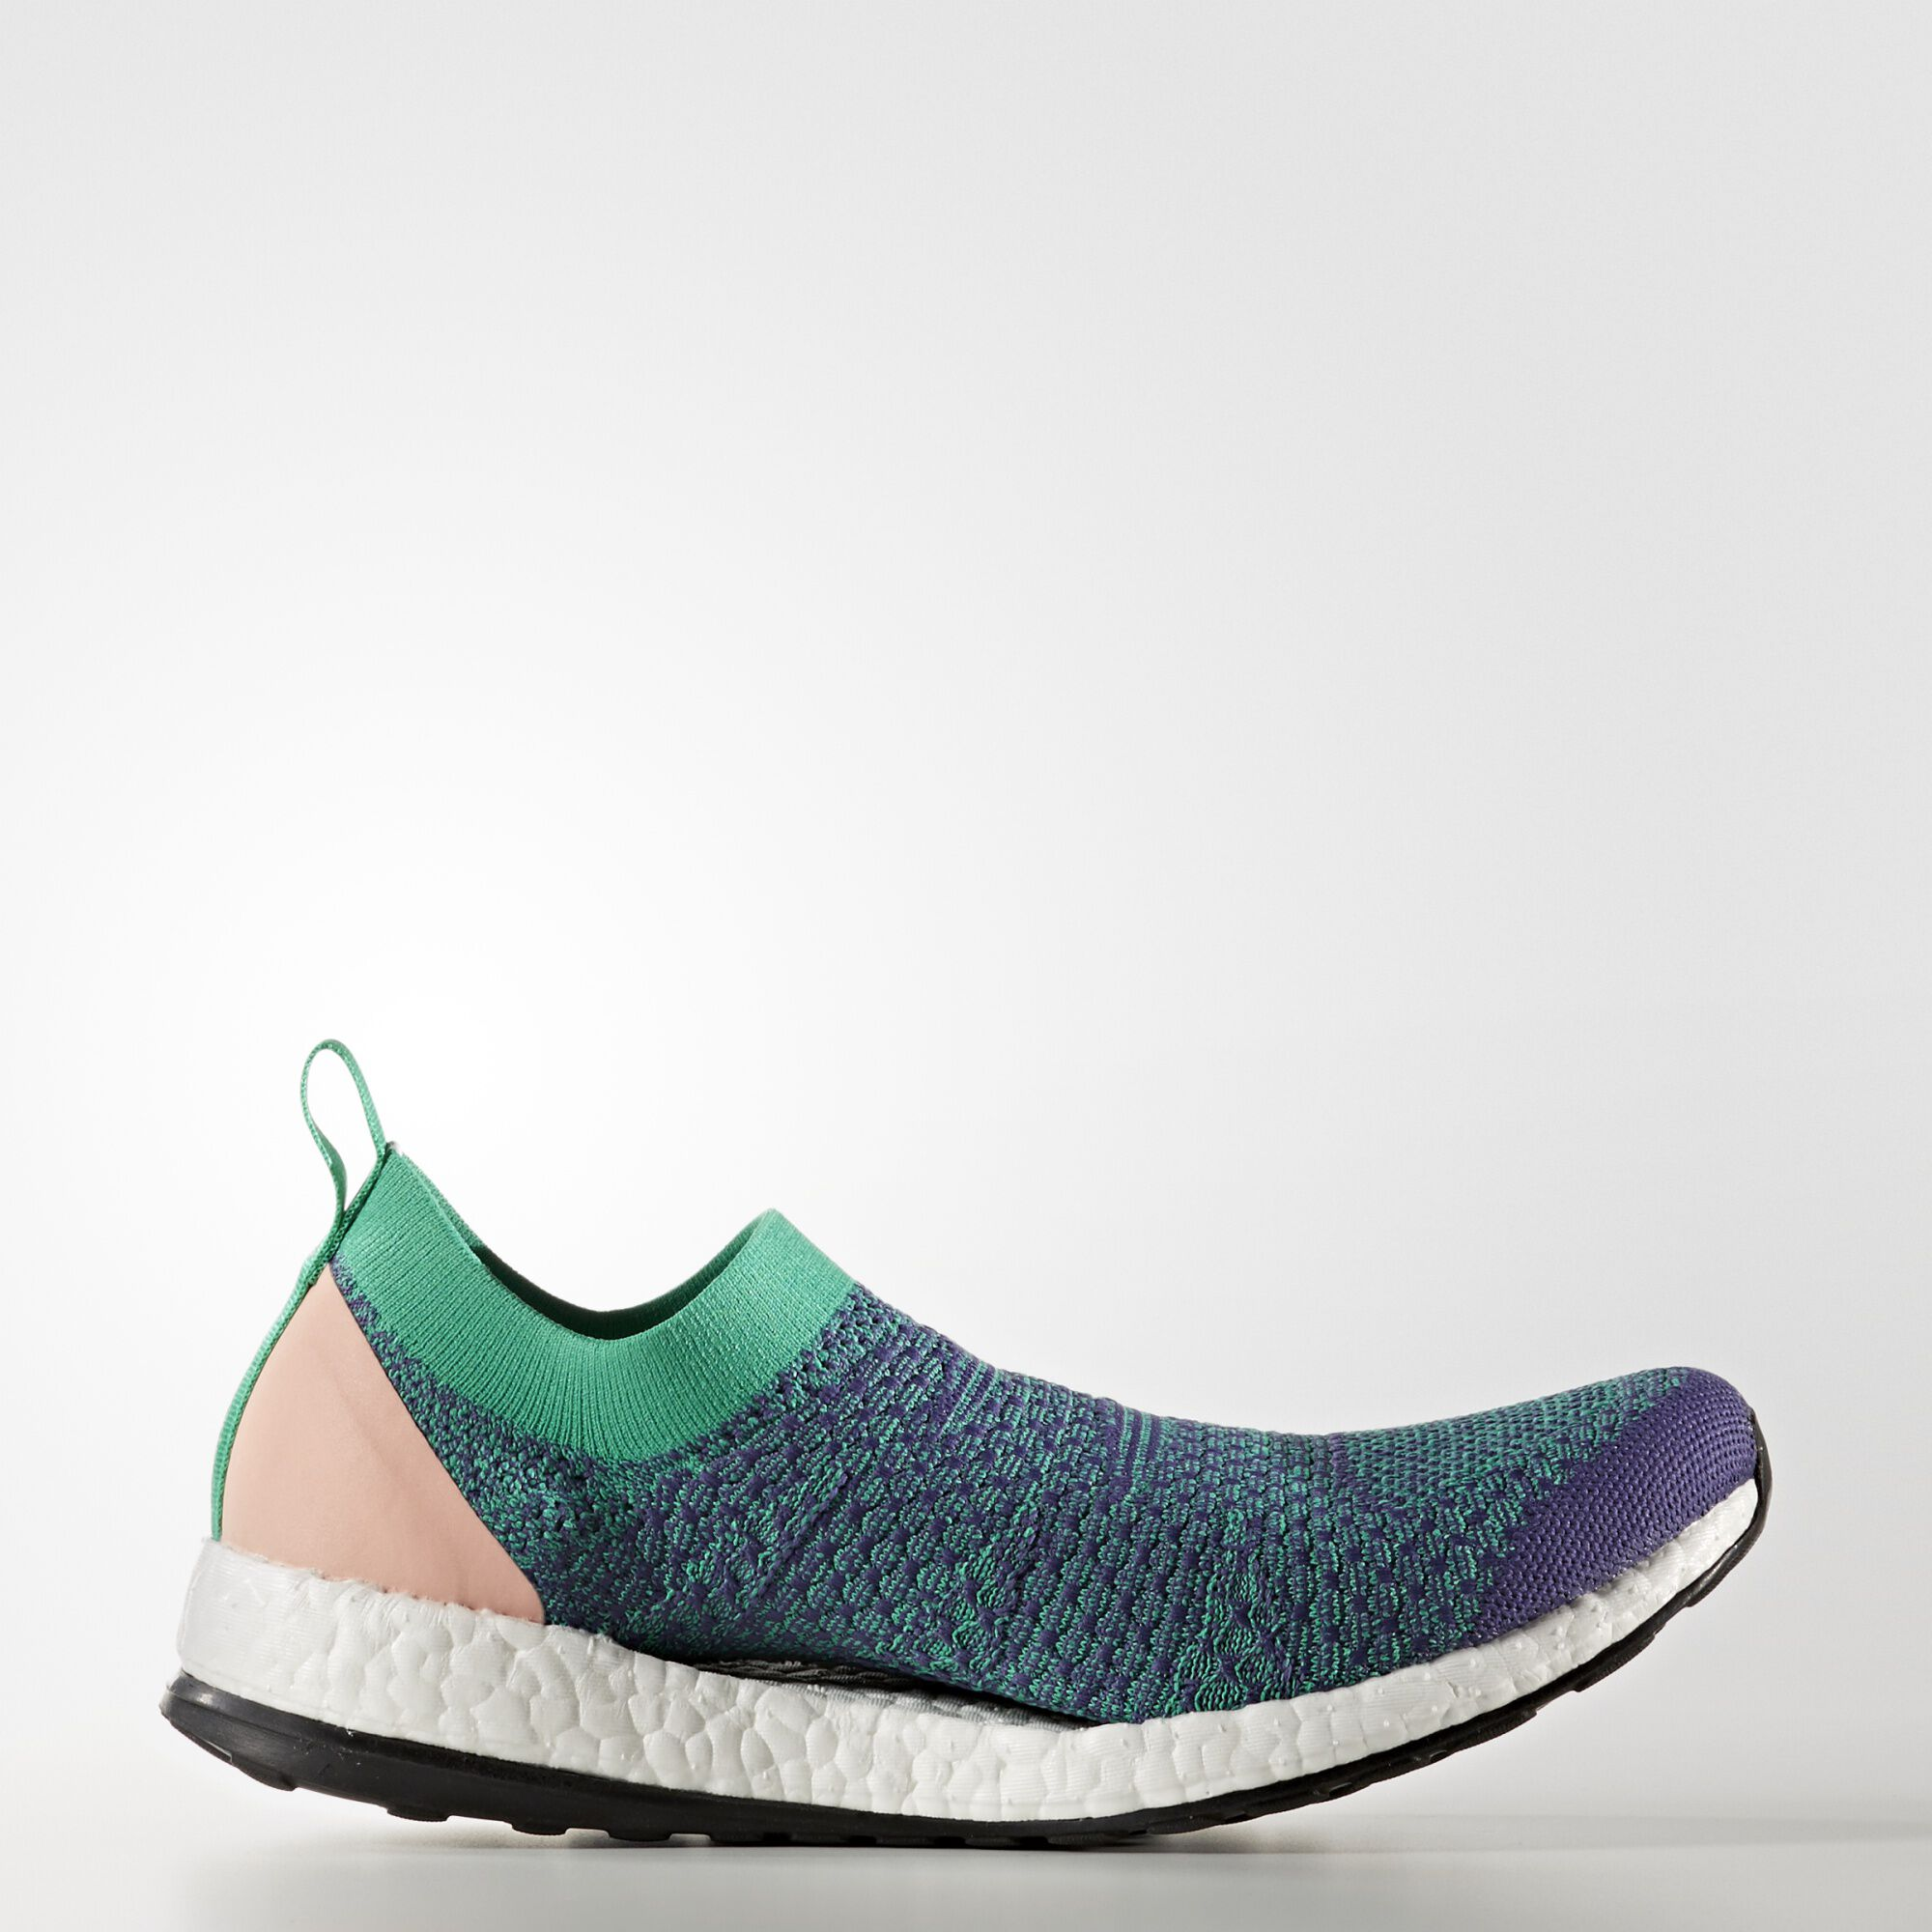 Pure Boost ZG Trainer Shoes adidas AU